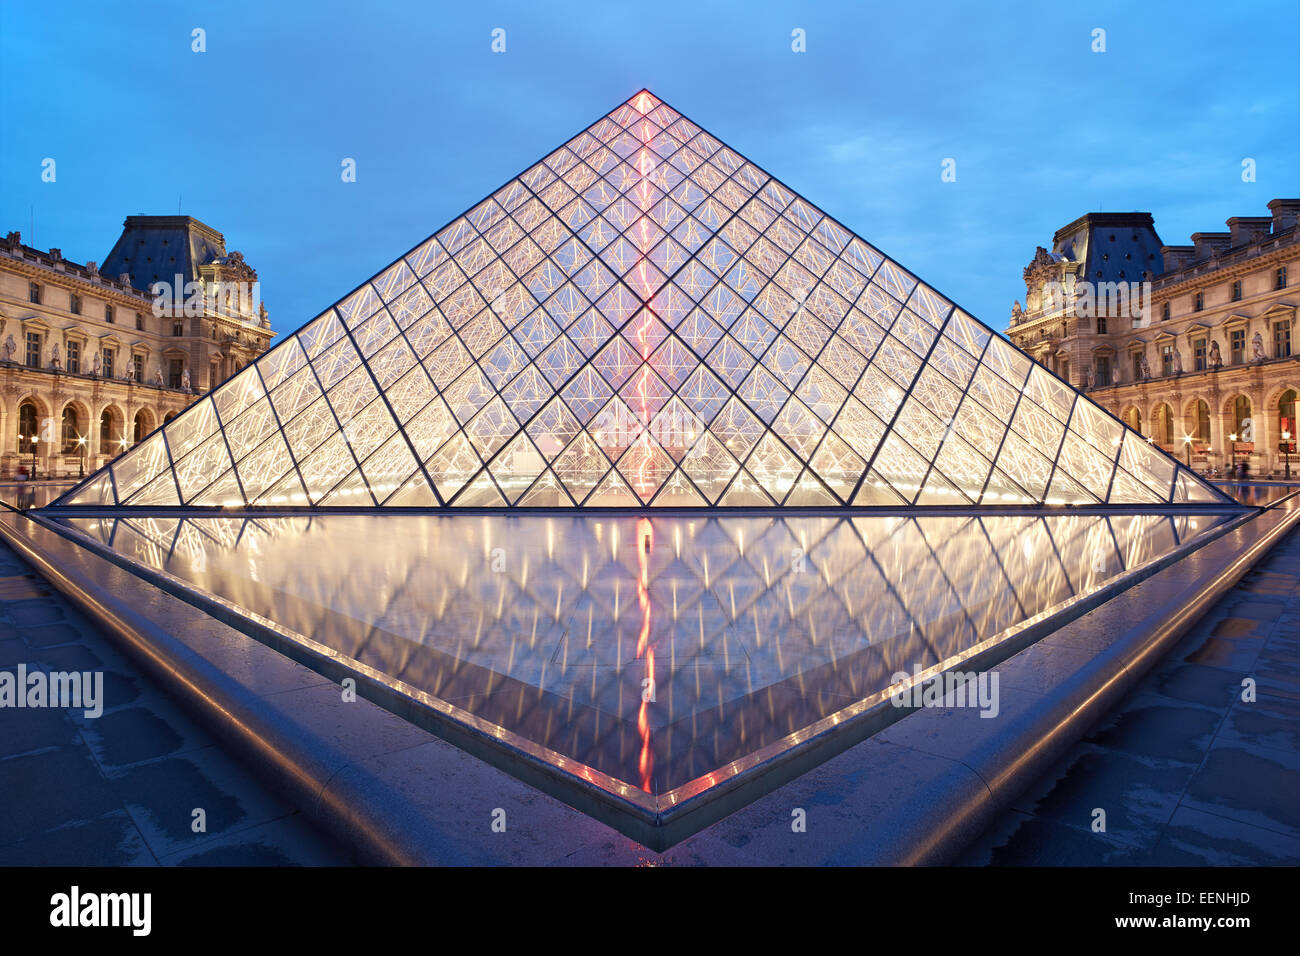 Louvre pyramid and museum night view in Paris, France Stock Photo